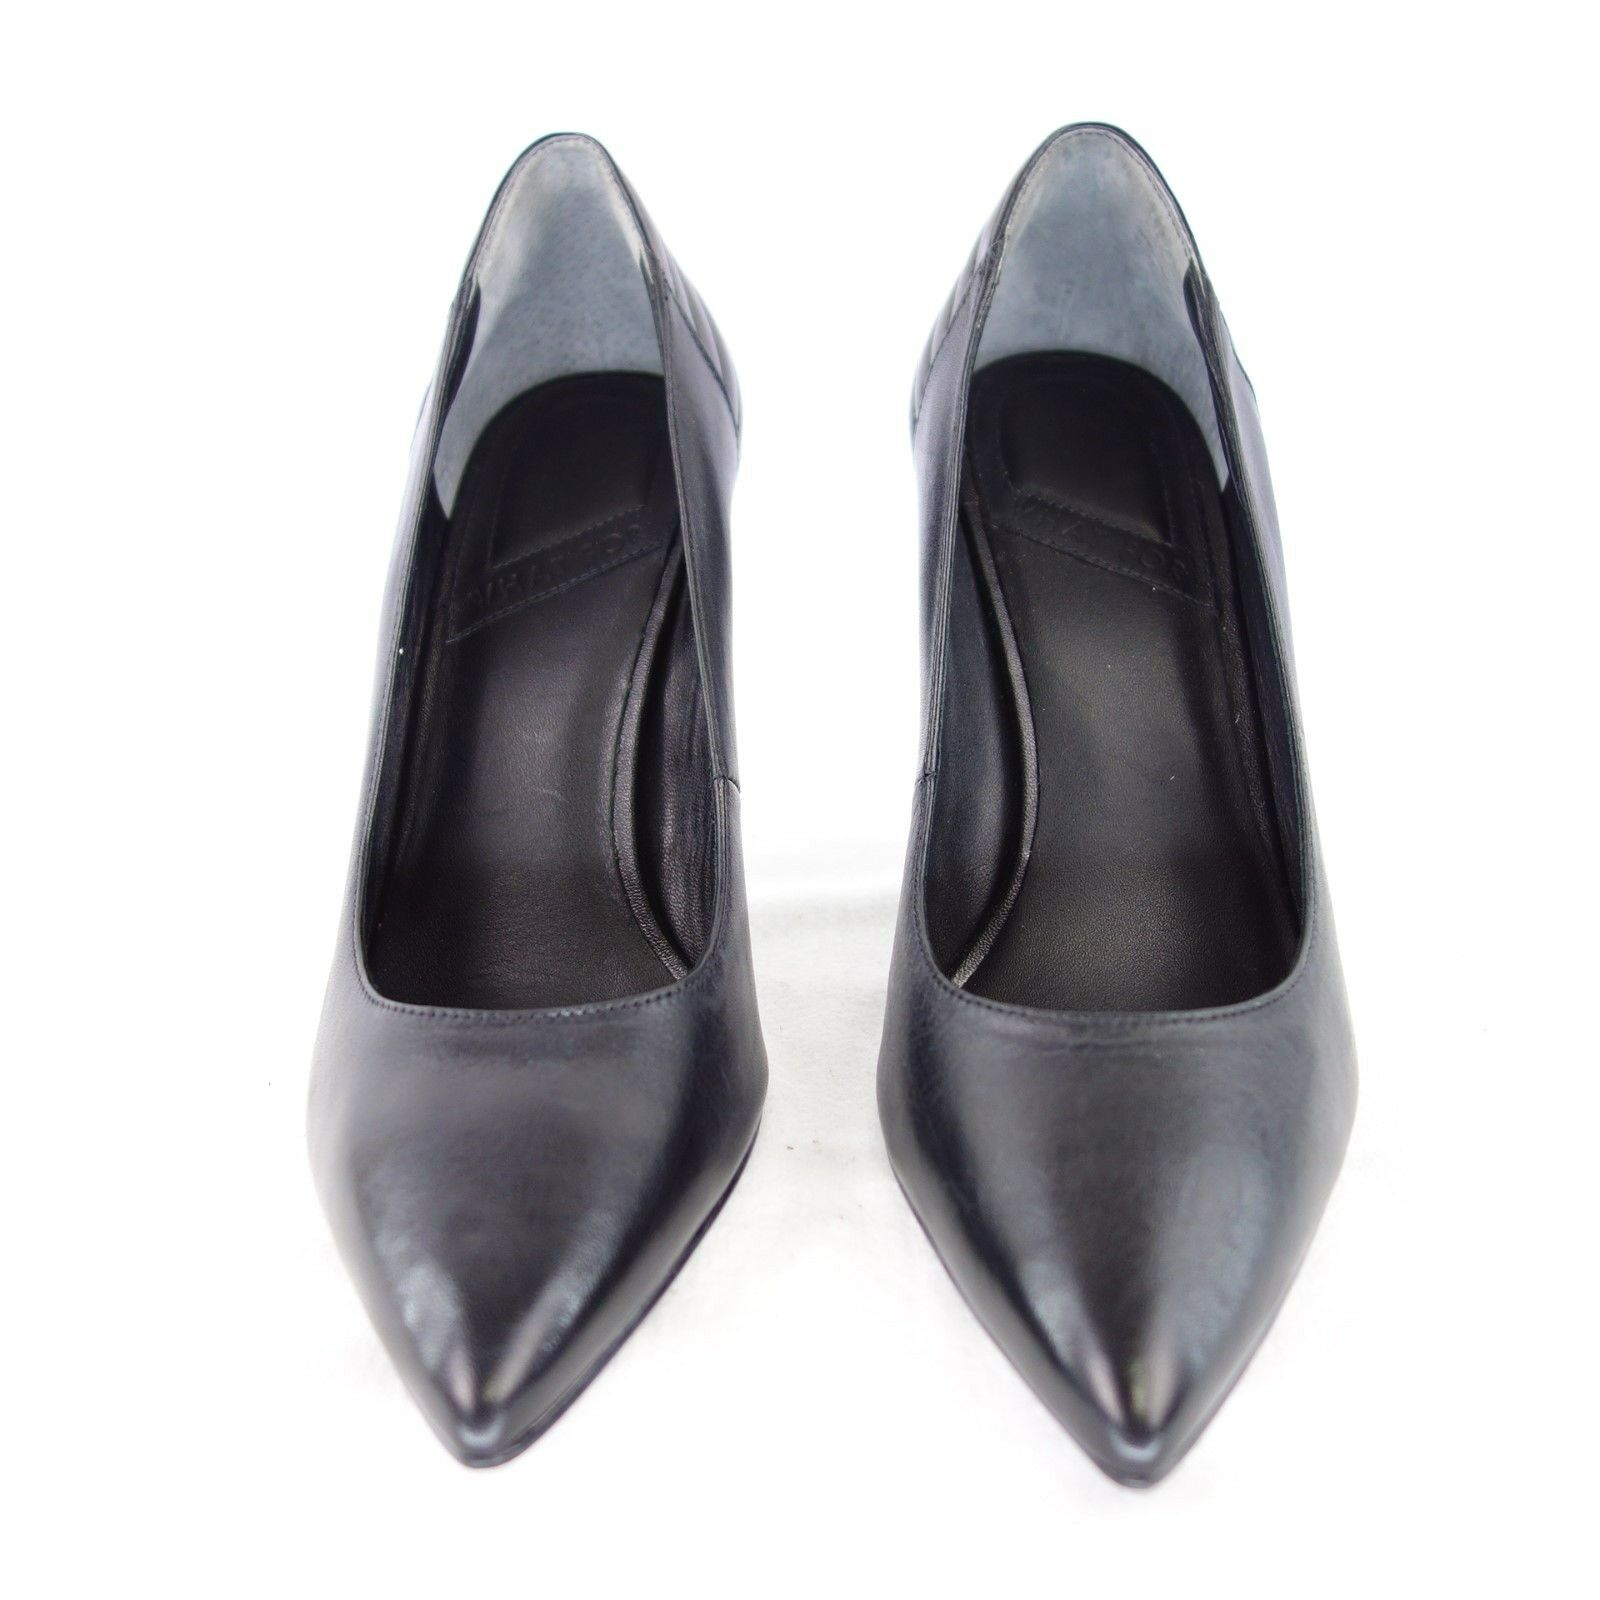 WHAT WHAT WHAT FOR Damen Schuhe Pumps Gr 37 40 Schwarz Leder Stiletto Spitz NP 129 NEU 664259